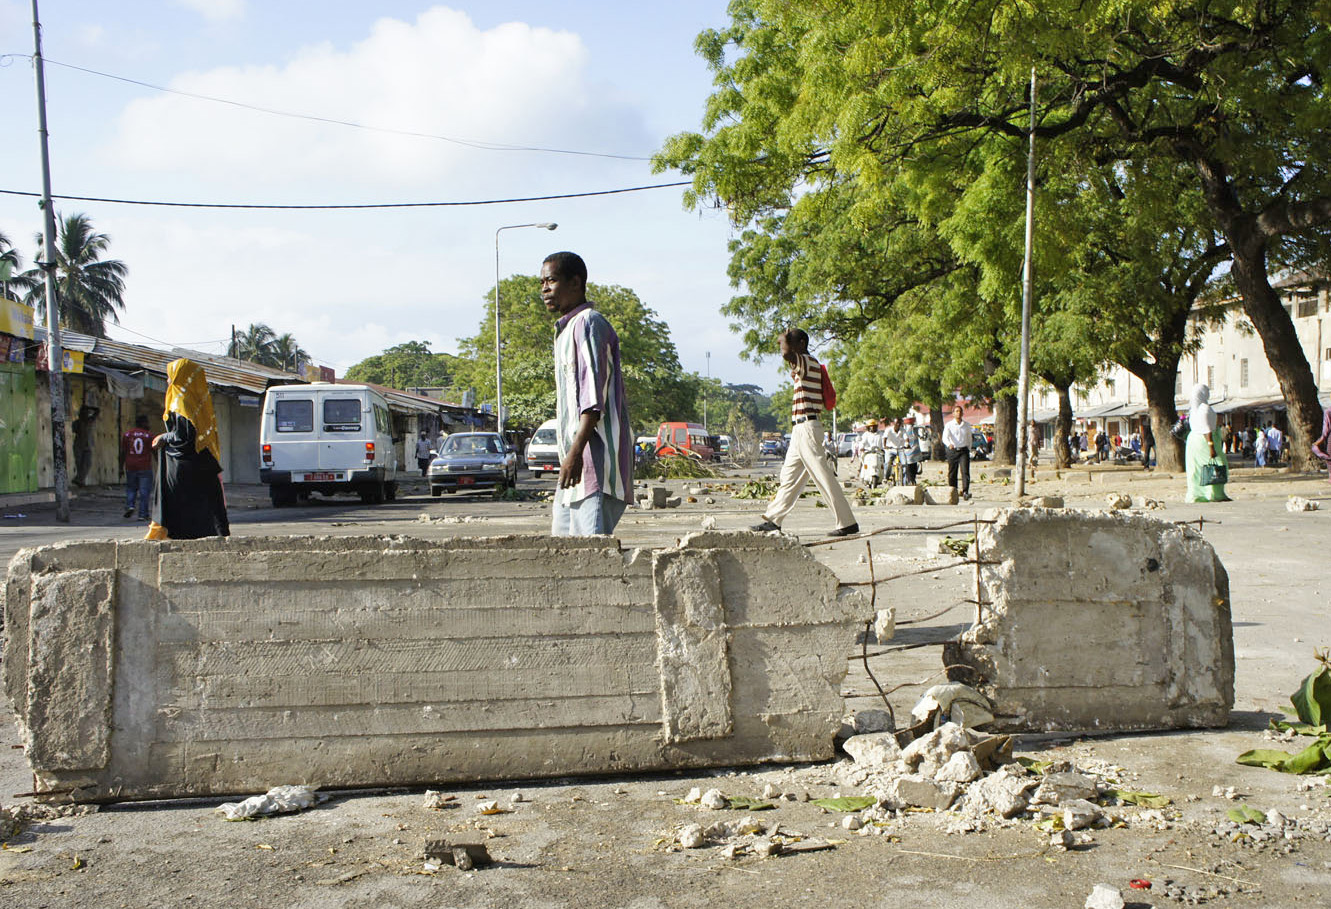 Riots in Zanzibar. October 2012